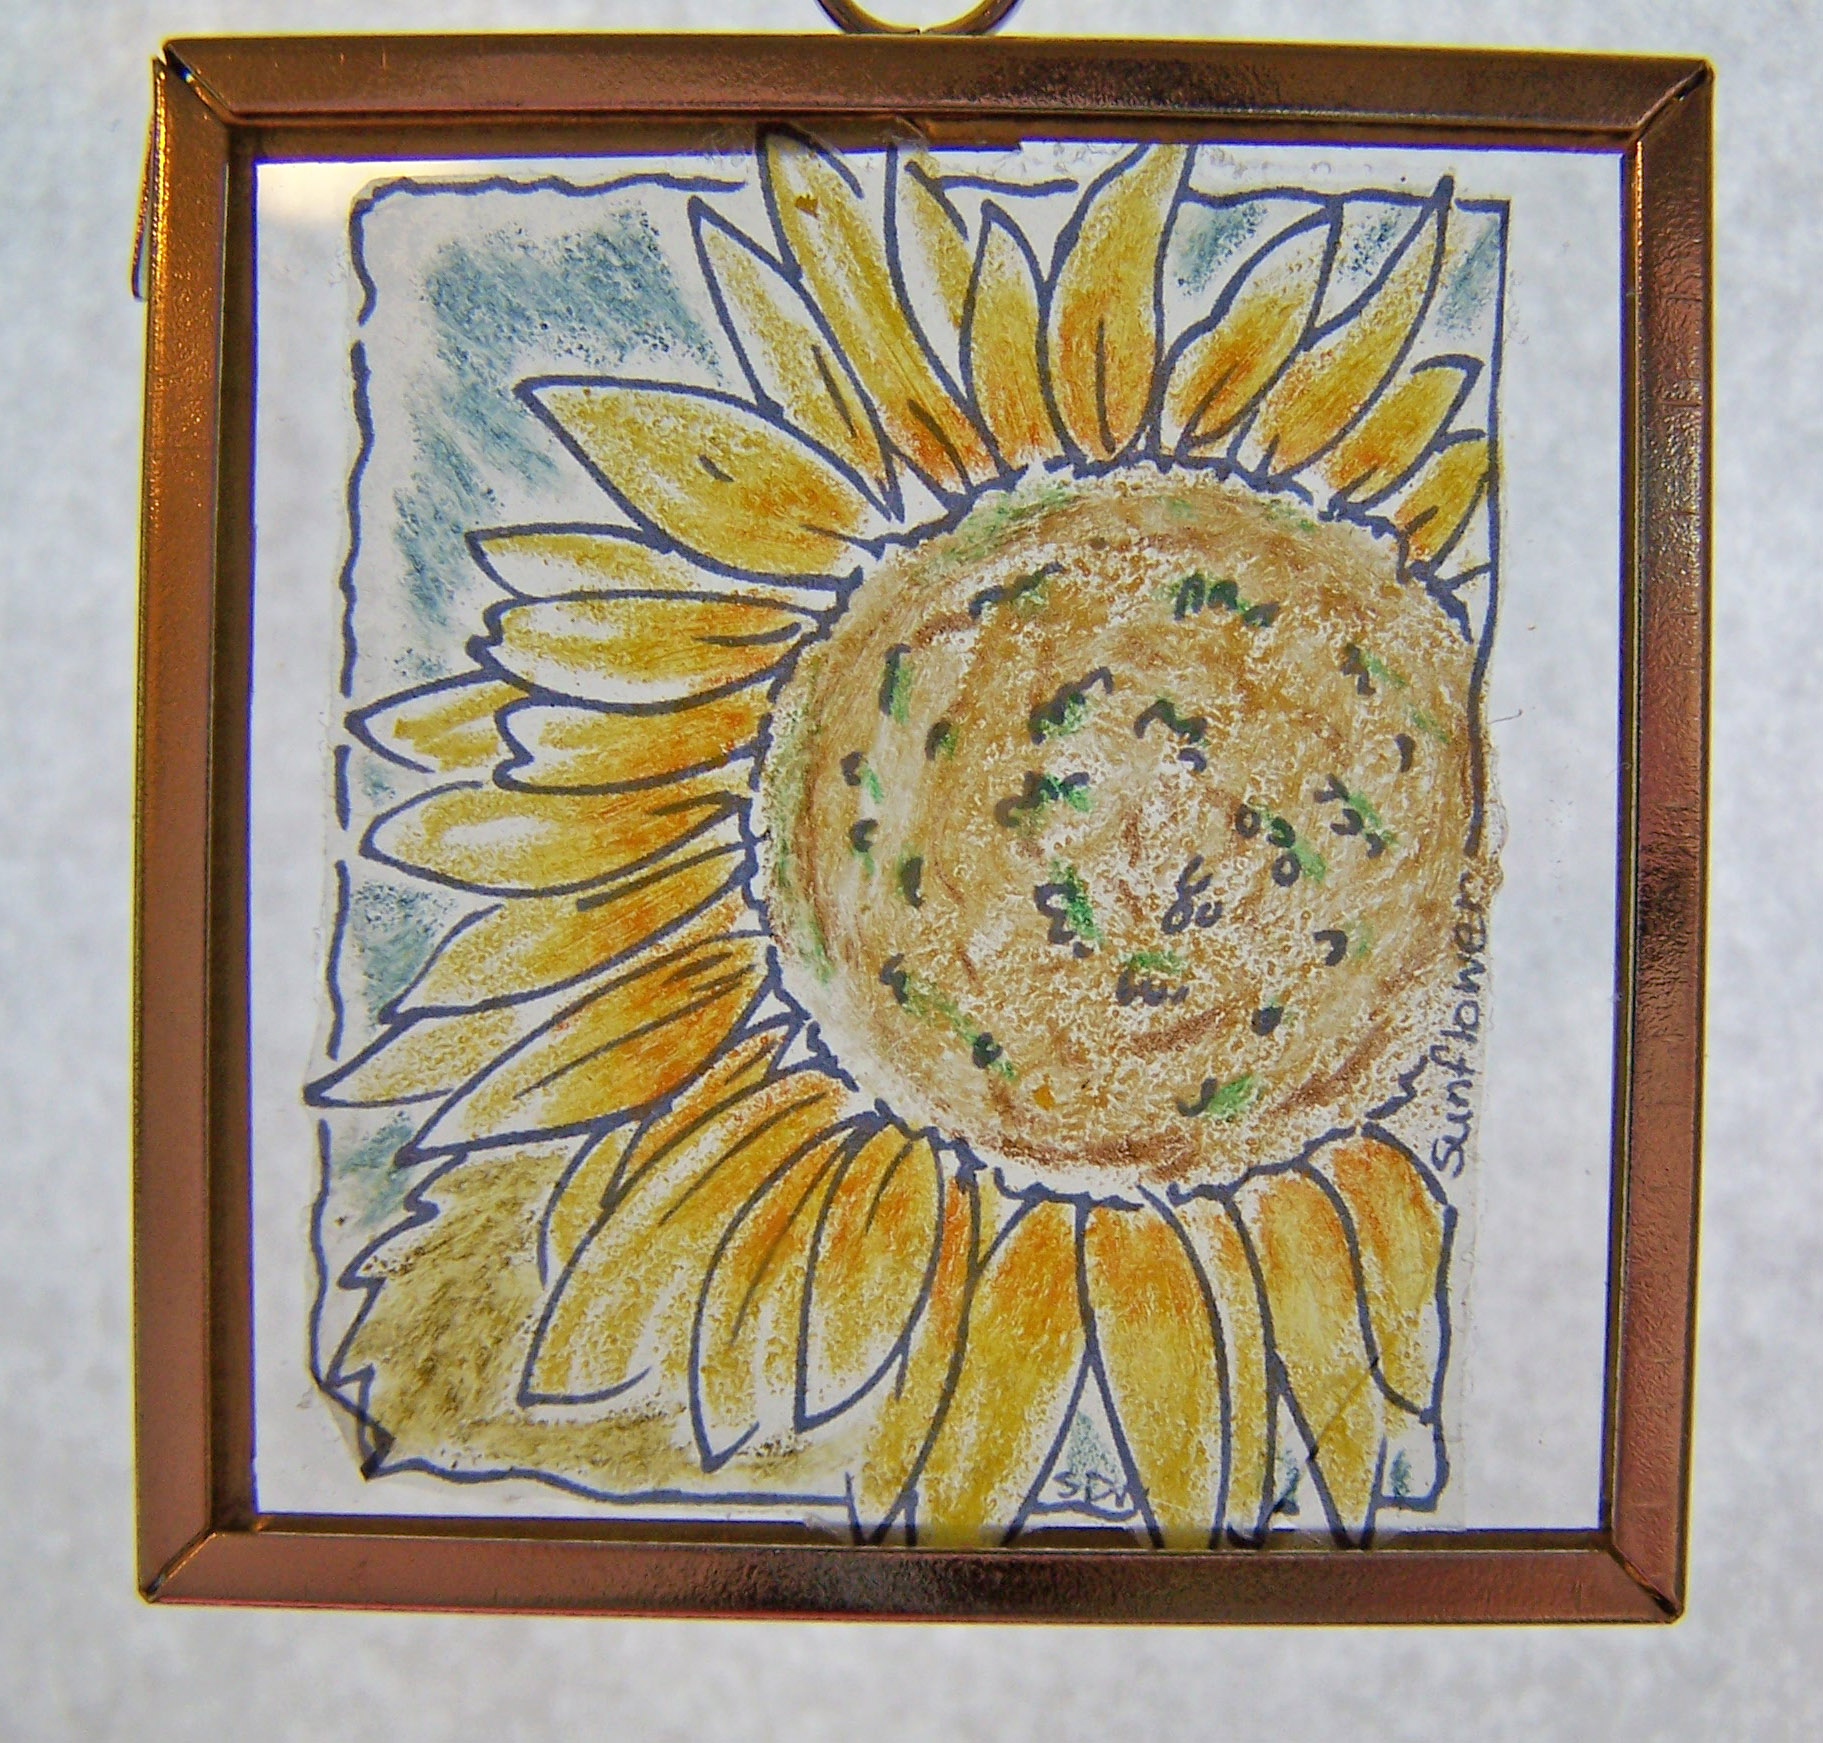 Sunflower window ornament